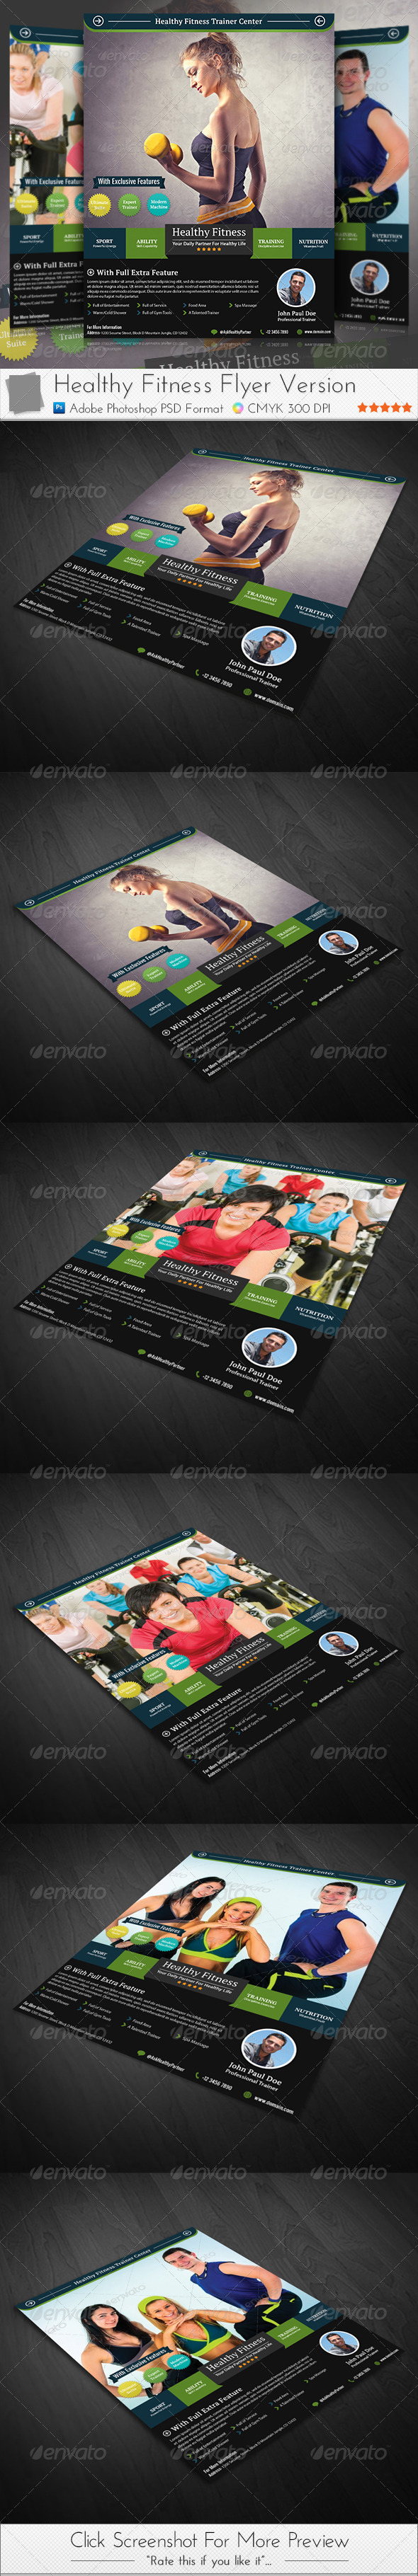 Healthy Fitness Flyer  Promotions    Print Templates